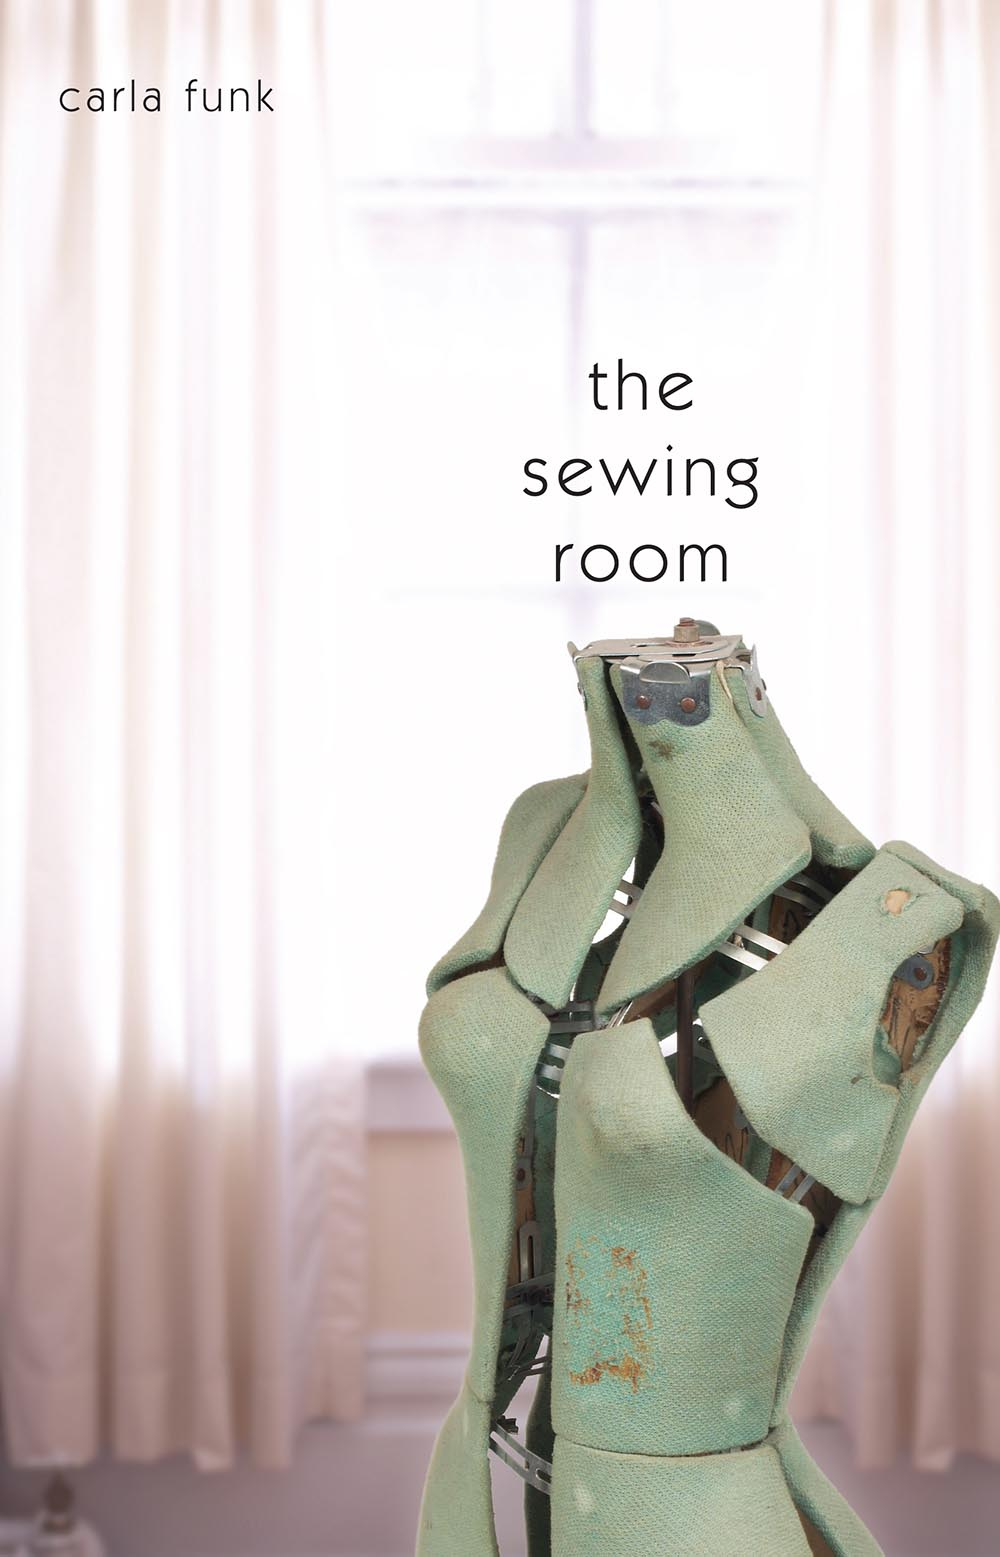 The Sewing Room by Carla Funk